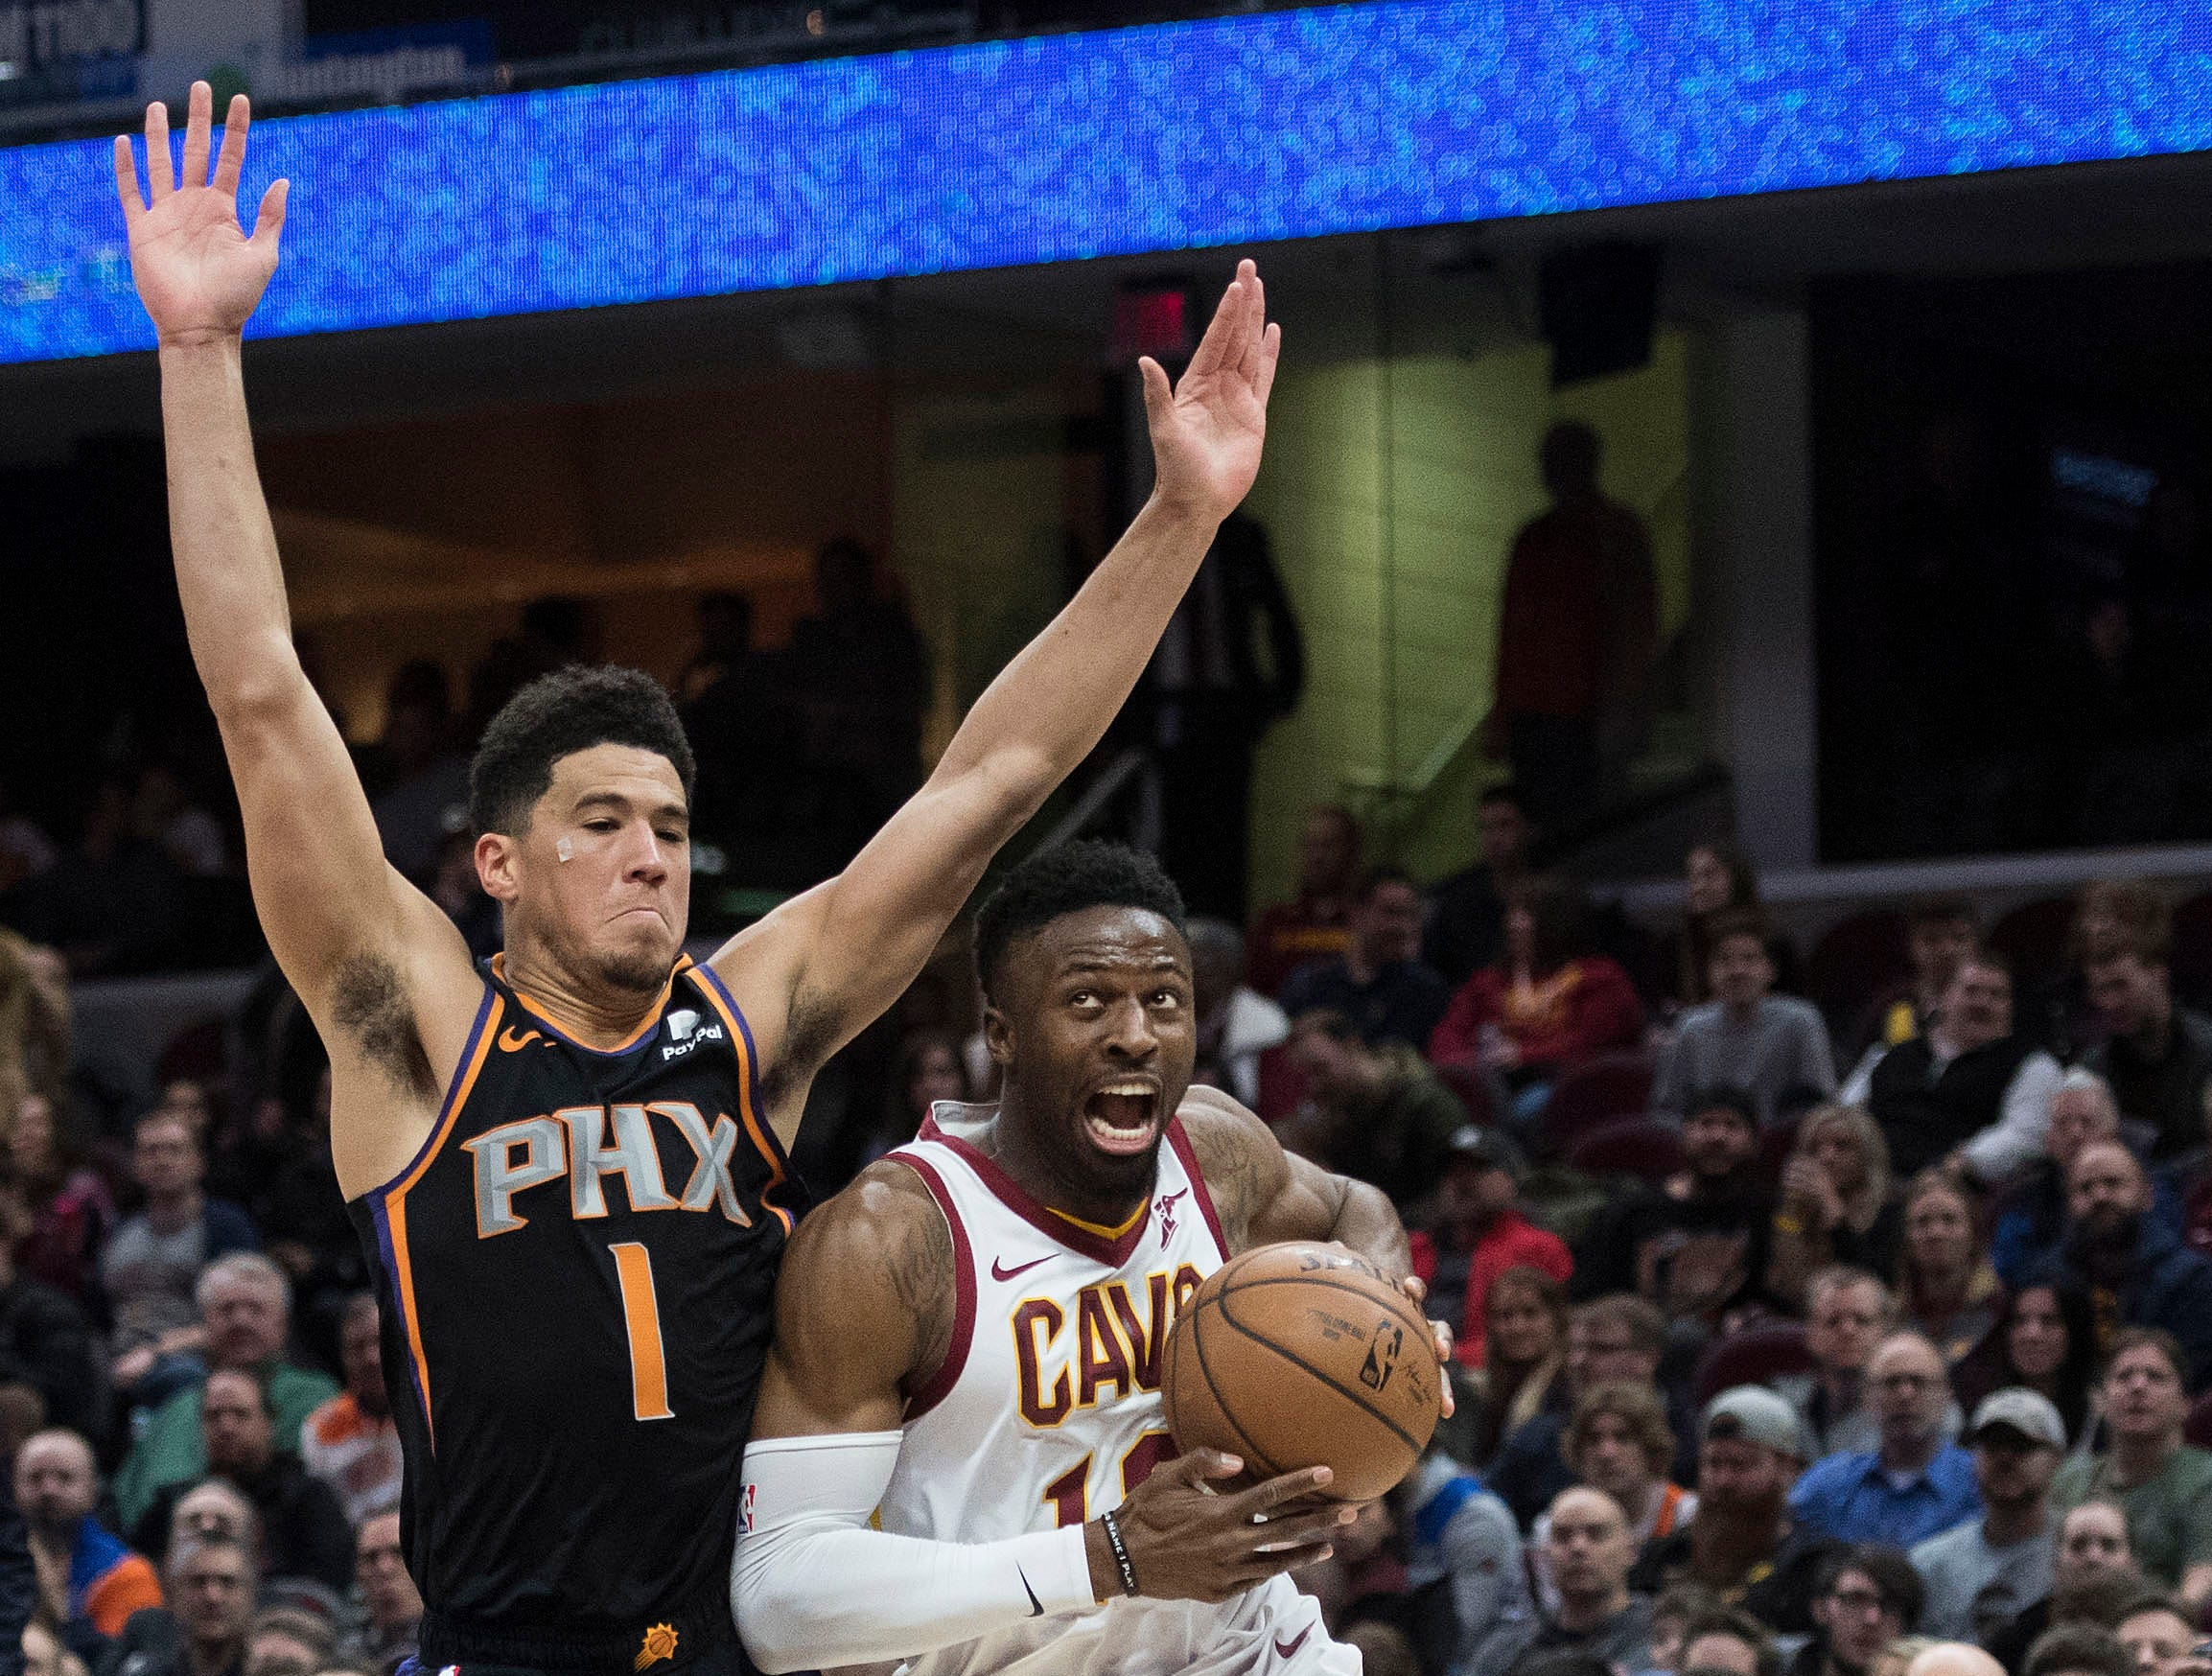 Feb 21, 2019; Cleveland, OH, USA; Cleveland Cavaliers guard David Nwaba (12) drives to the basket against Phoenix Suns guard Devin Booker (1) during the second half at Quicken Loans Arena. Mandatory Credit: Ken Blaze-USA TODAY Sports